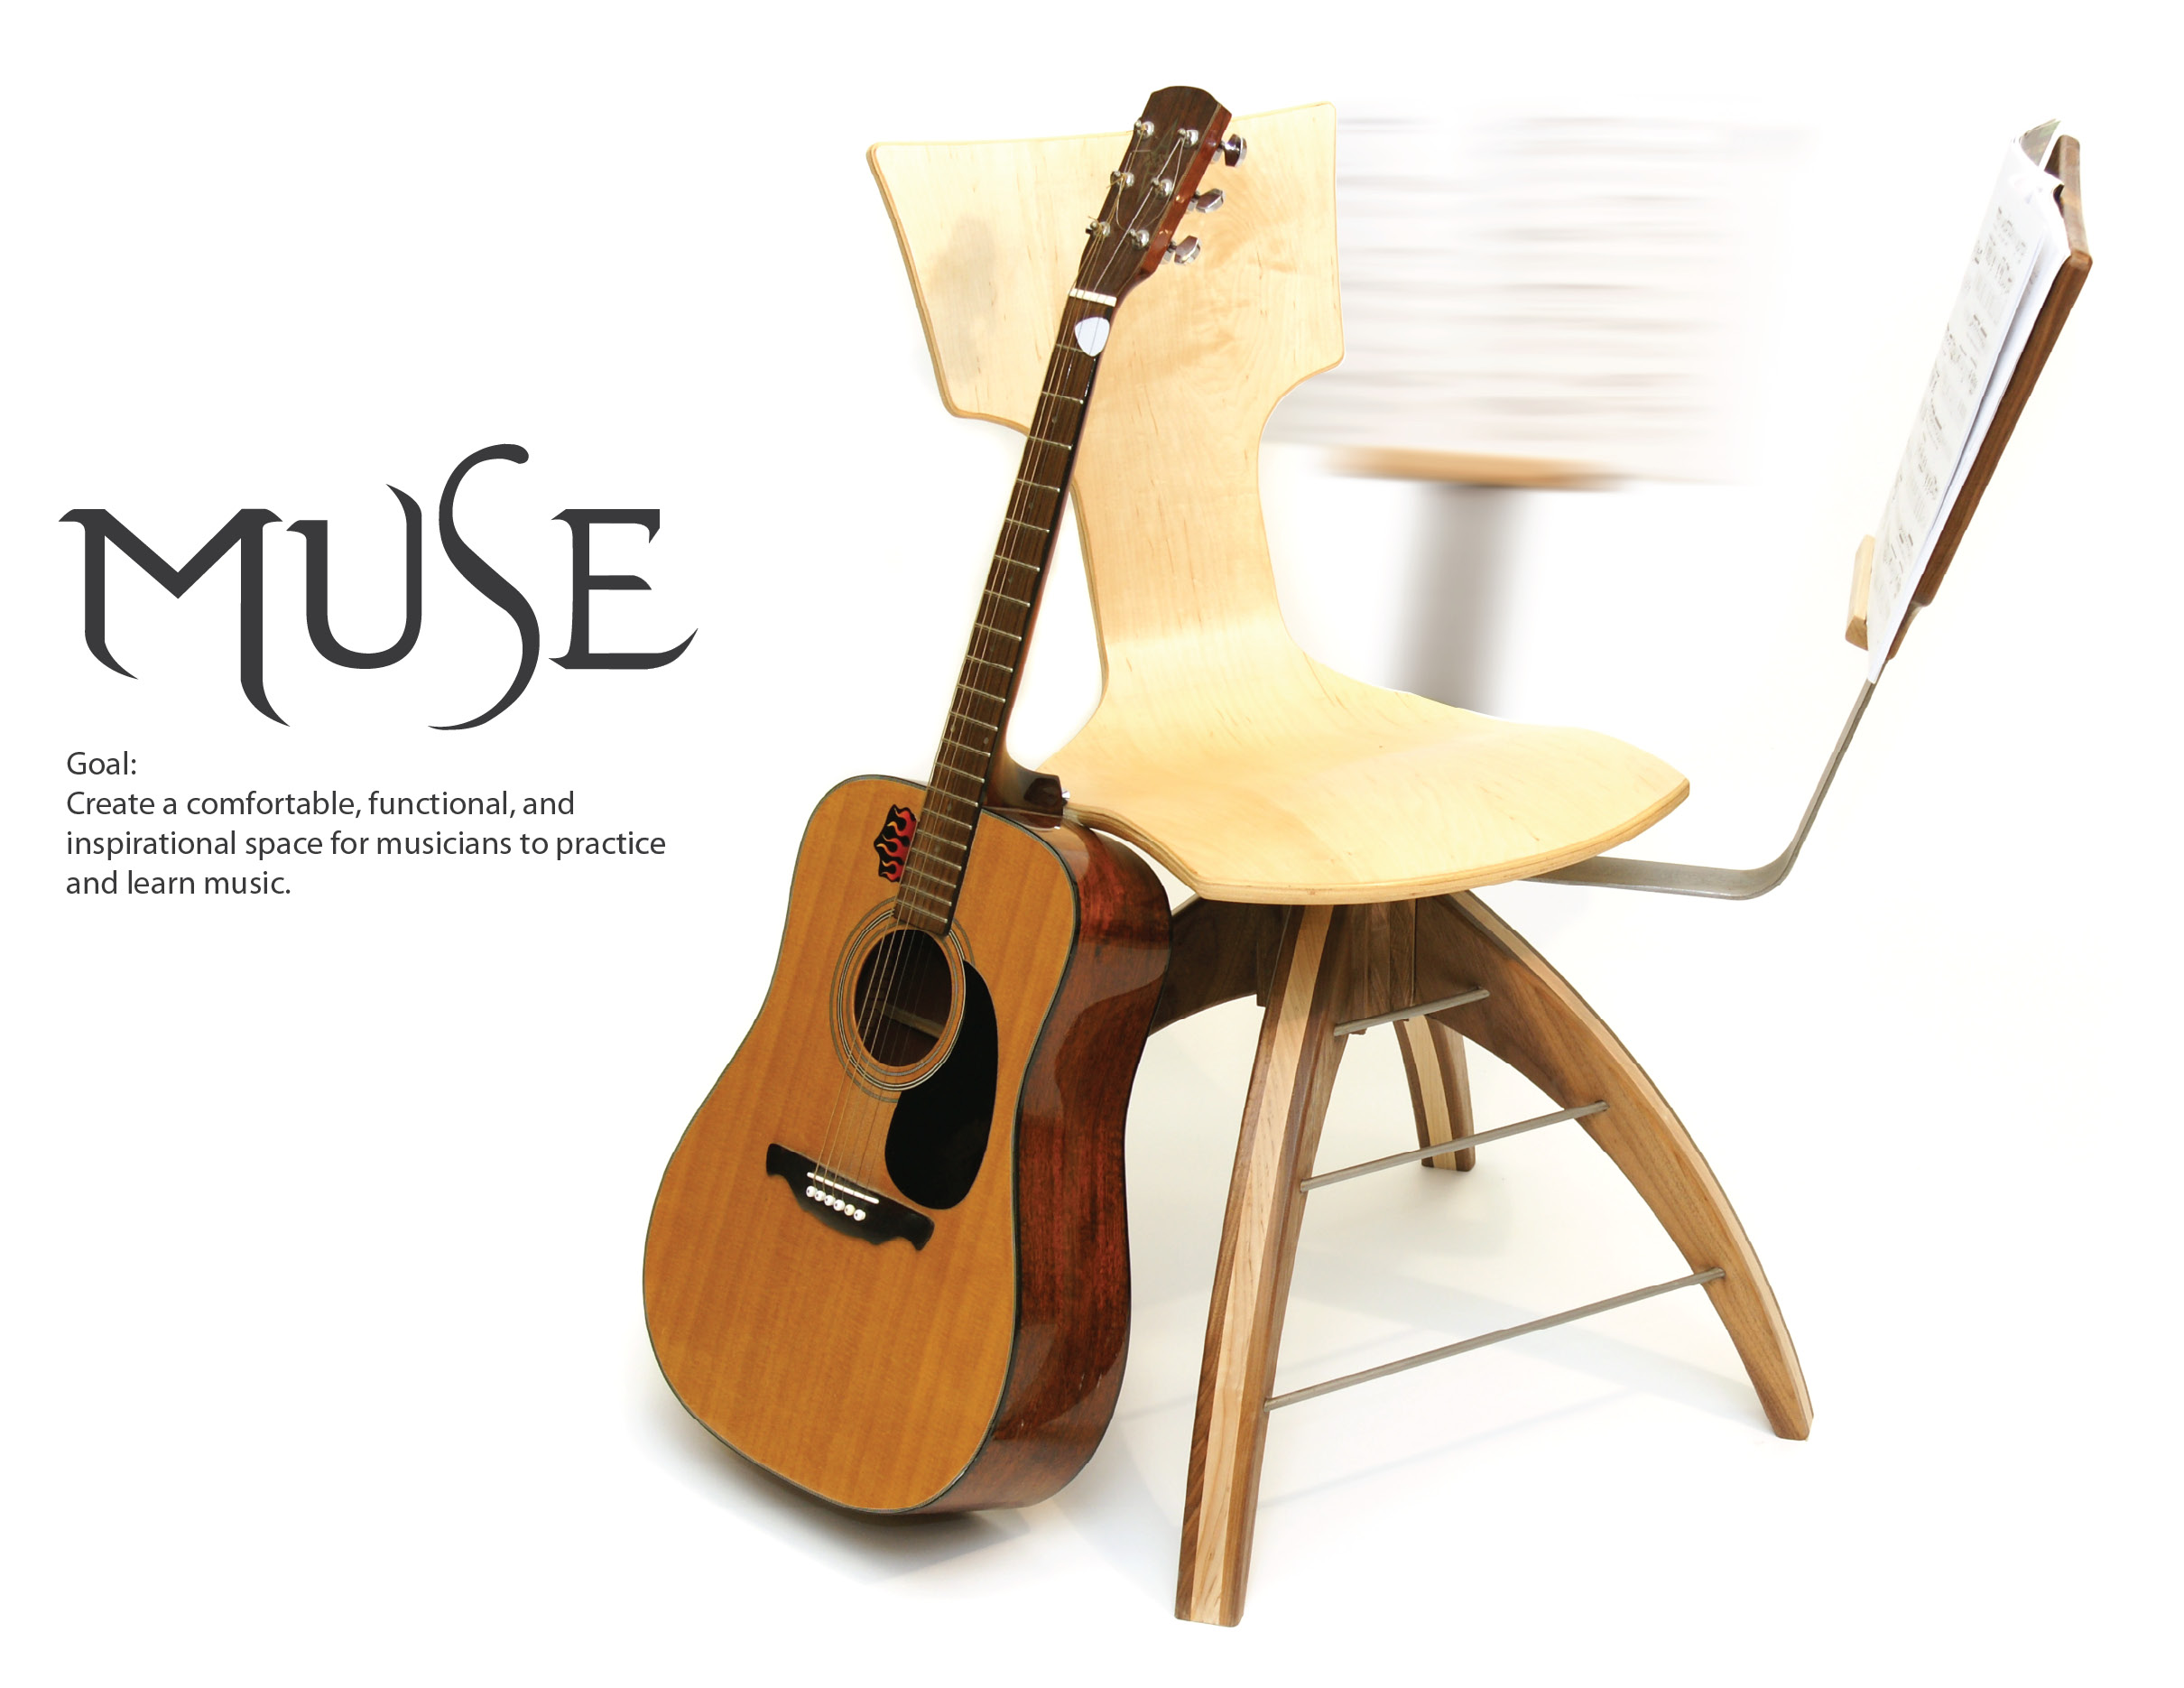 Muse Inspire Your Creativity By Corey Harris At Coroflot Com